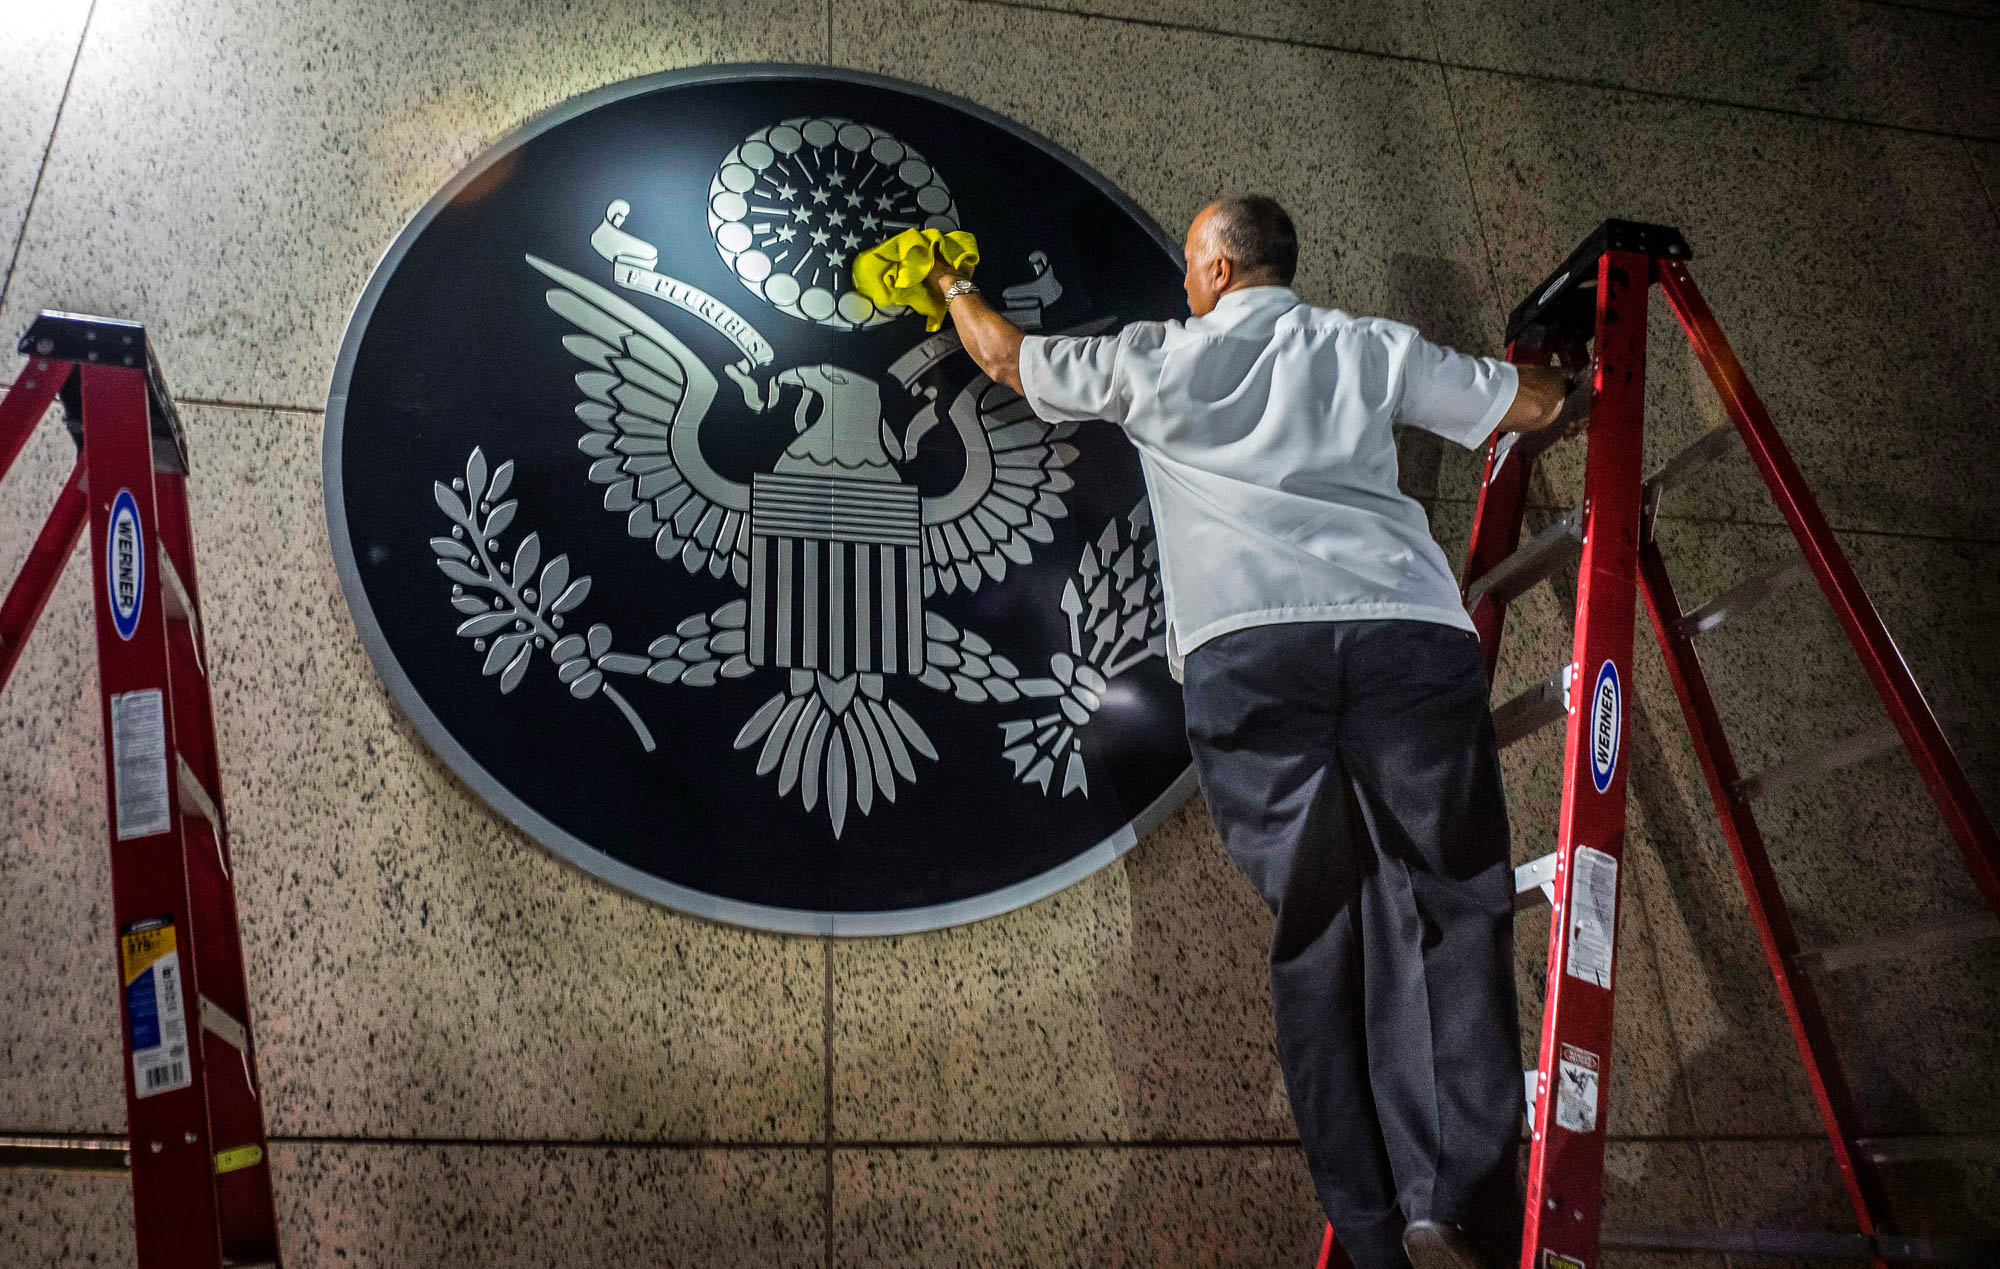 Man on ladder dusting wall decoration (© AP Images)